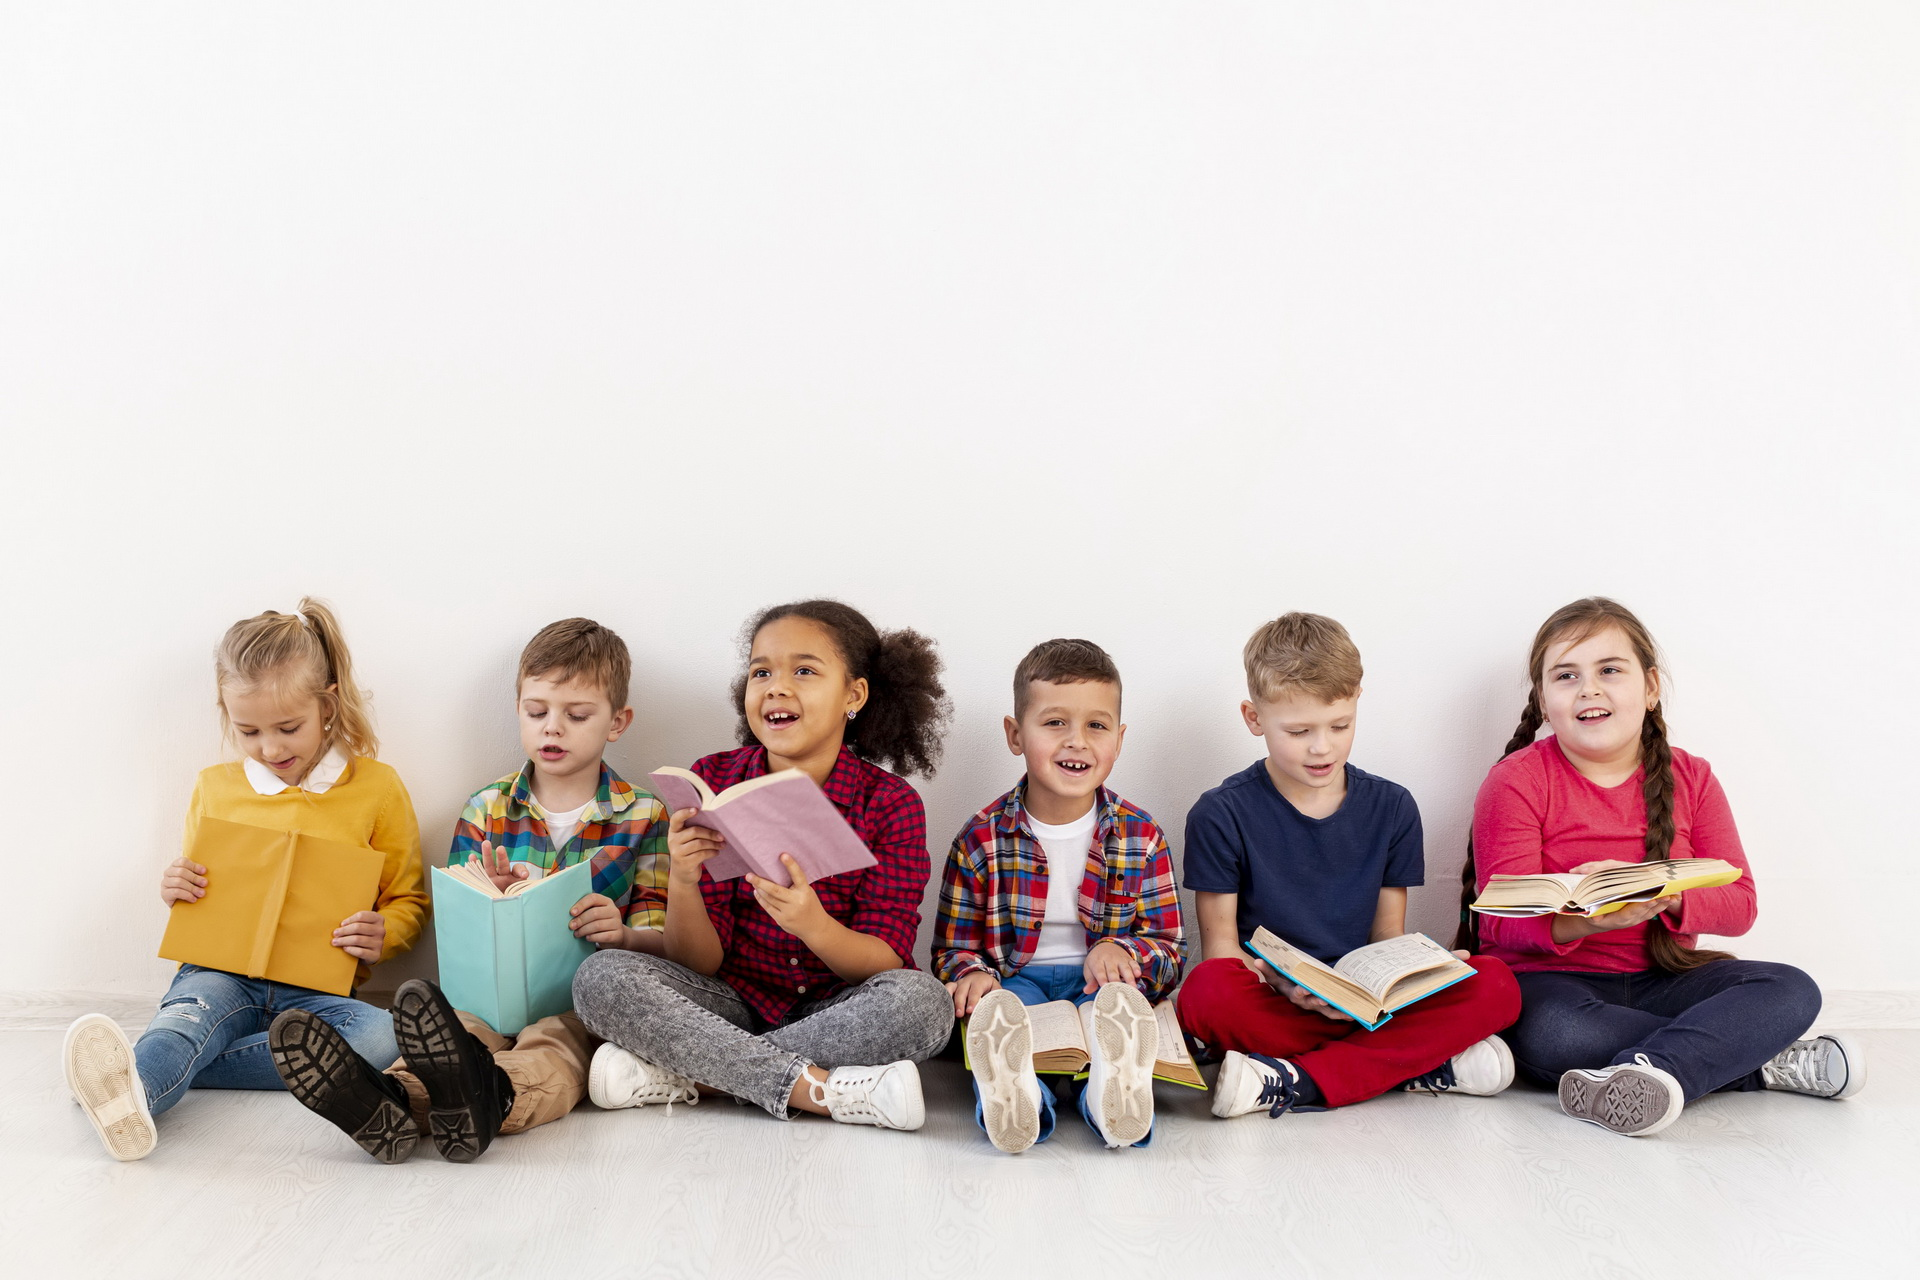 Spanish language courses for children